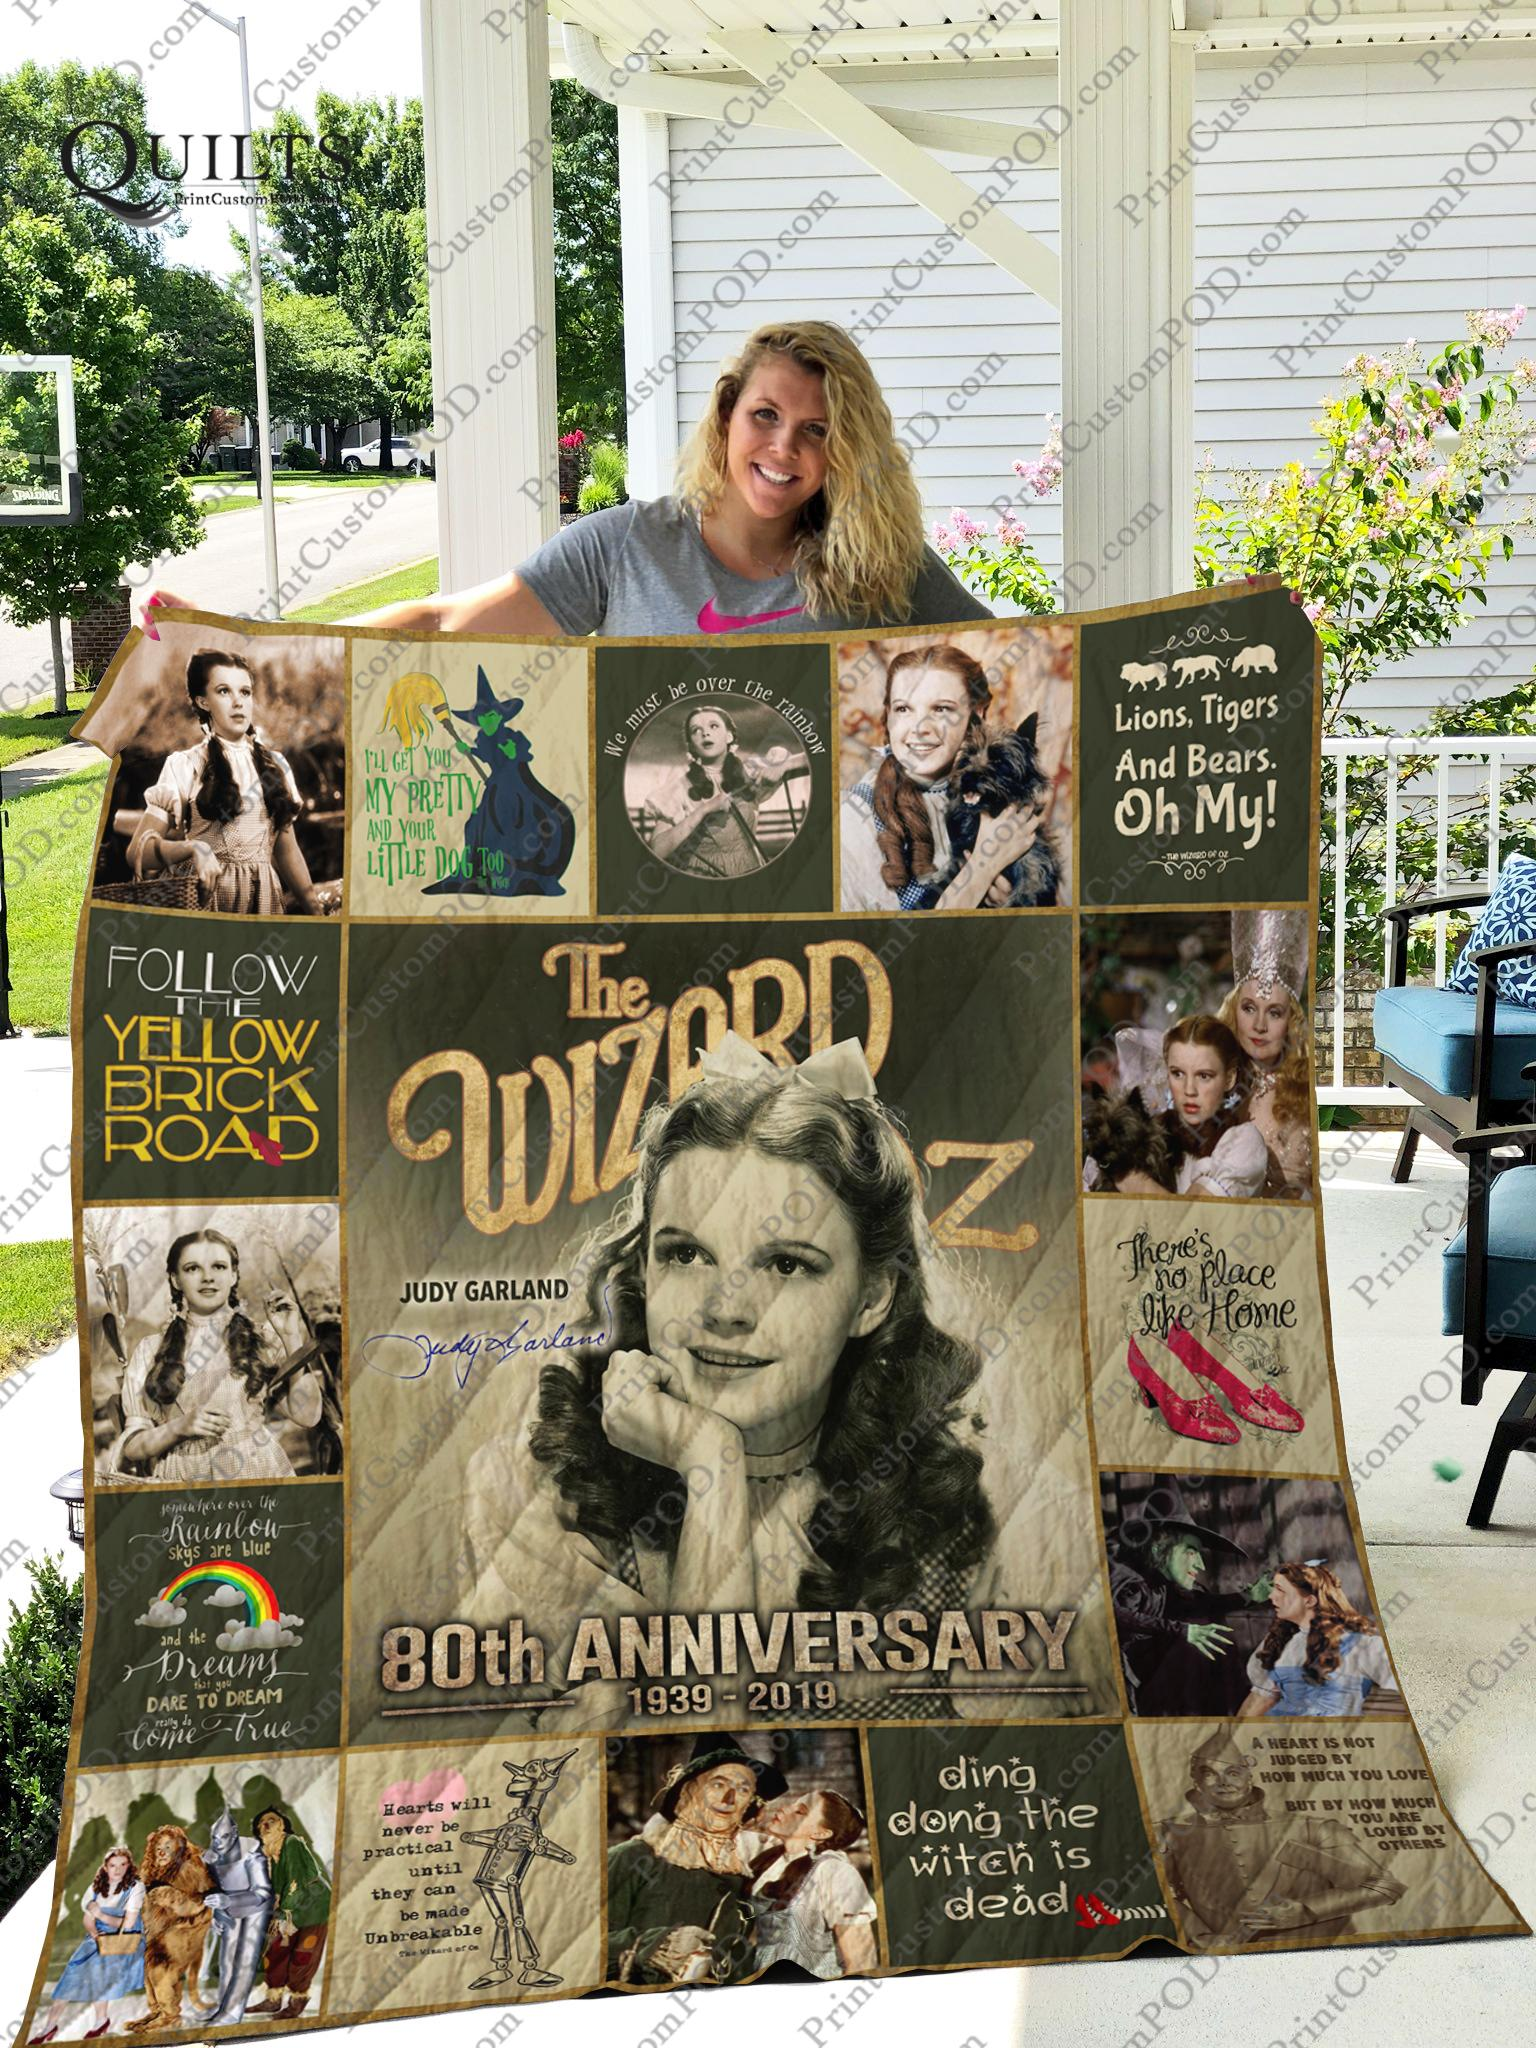 The wizard of oz judy garland 80th anniversary quilt - queen